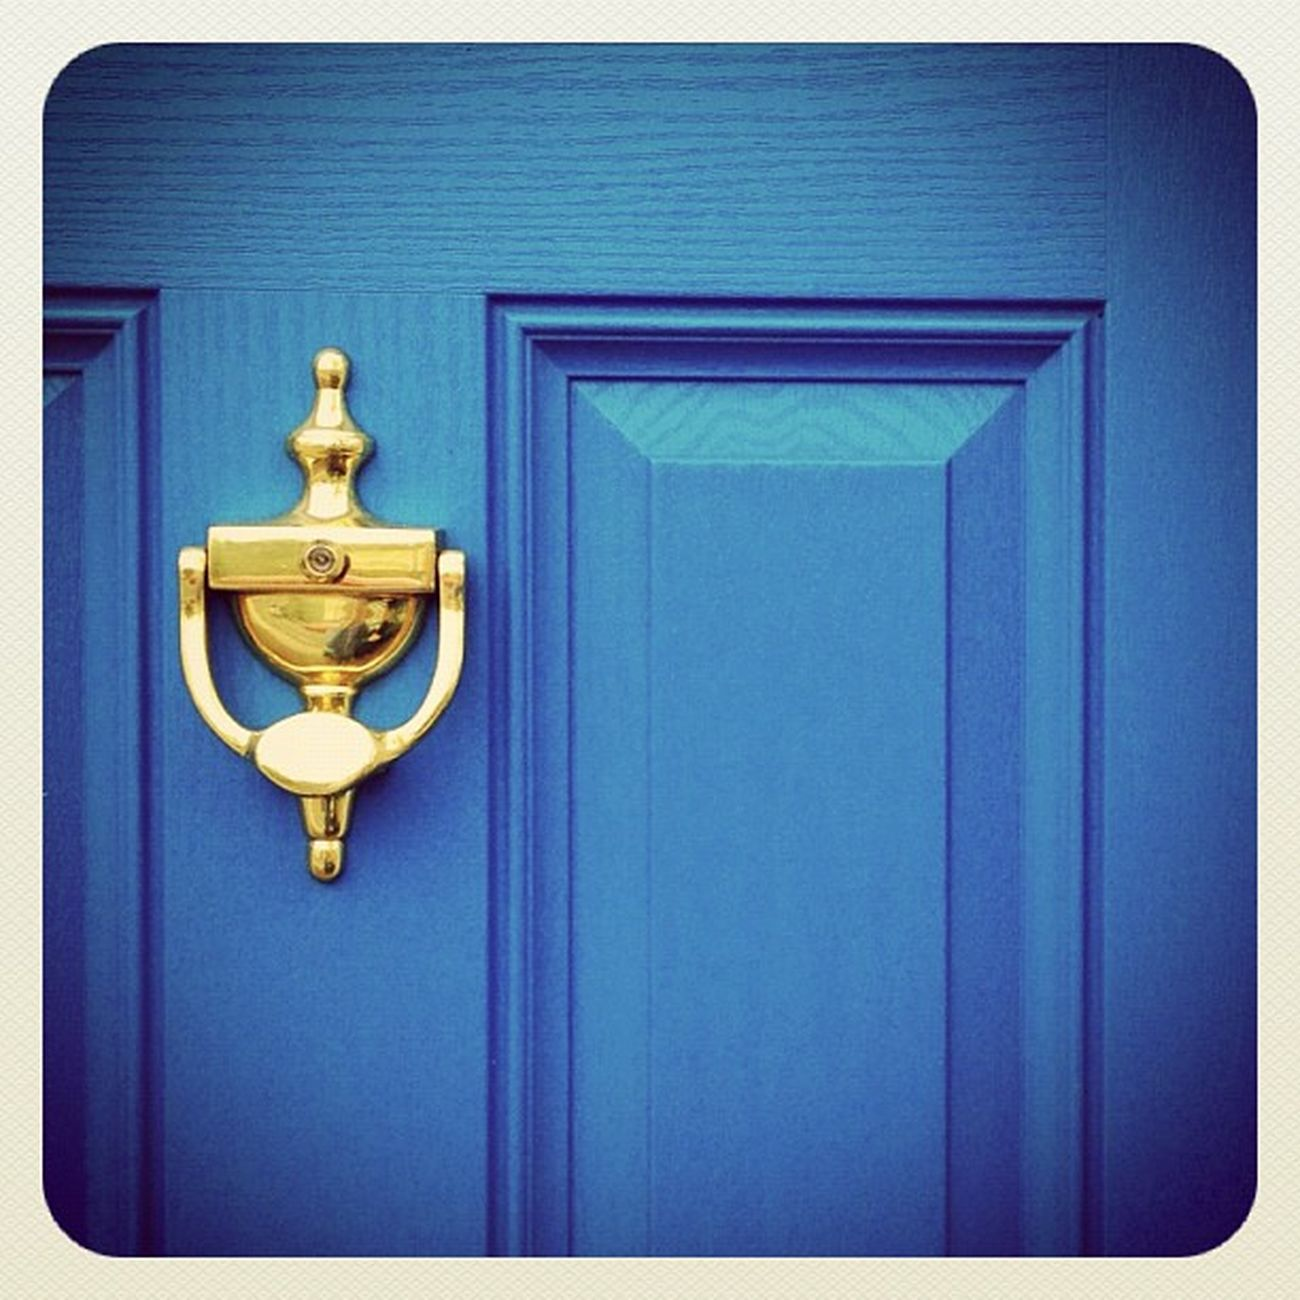 Just #blue #door ? #abstract #doorporn #ebstyles_gf #earlybirdlove #jj #jj_forum #ubiquography Abstract Door Blue Doorporn Jj  Earlybirdlove Jj_forum Ubiquography Ebstyles_gf Jj_forum_0334